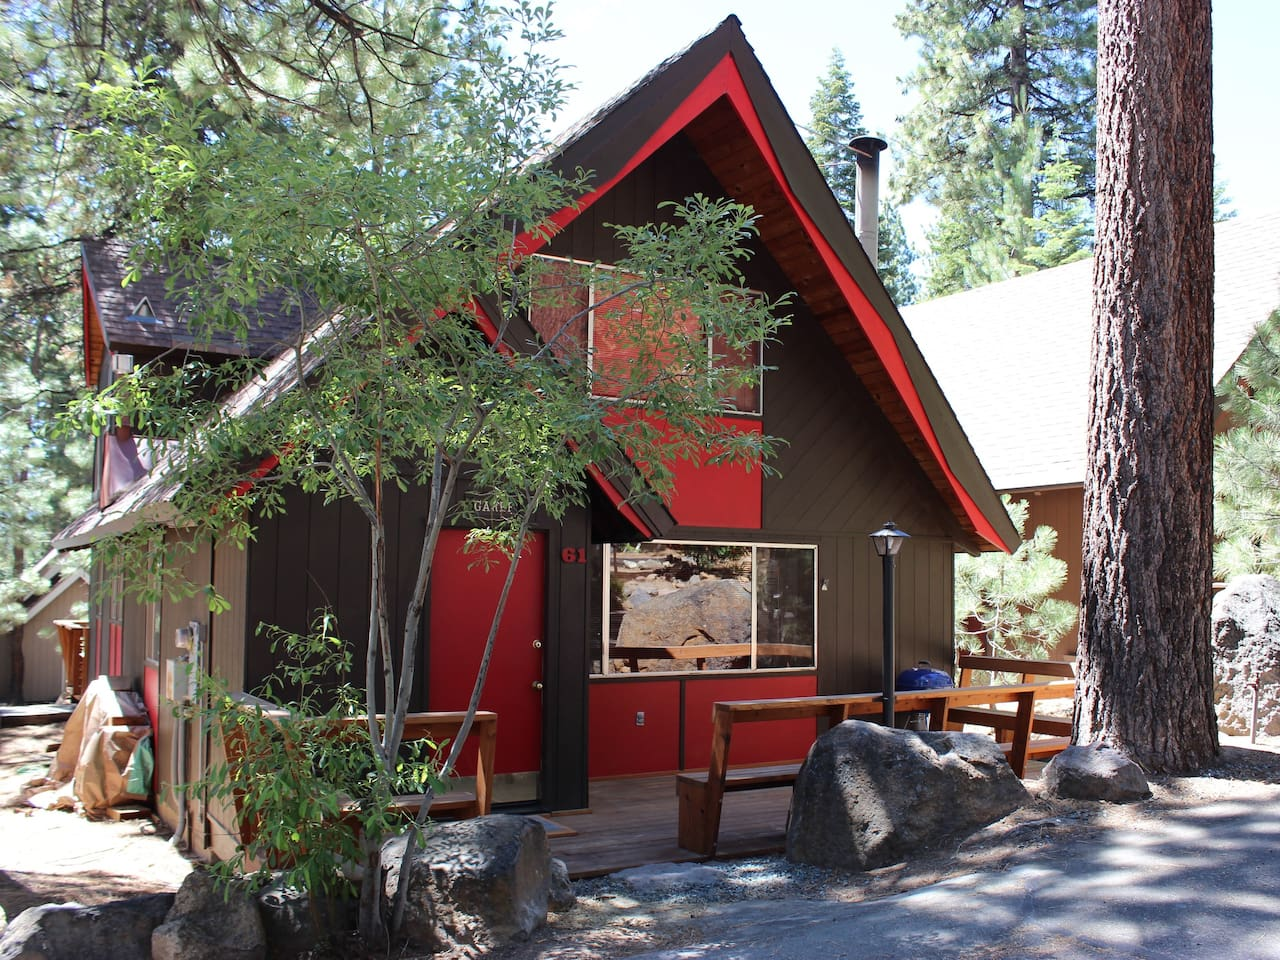 The Red Cabin at Incline Crest